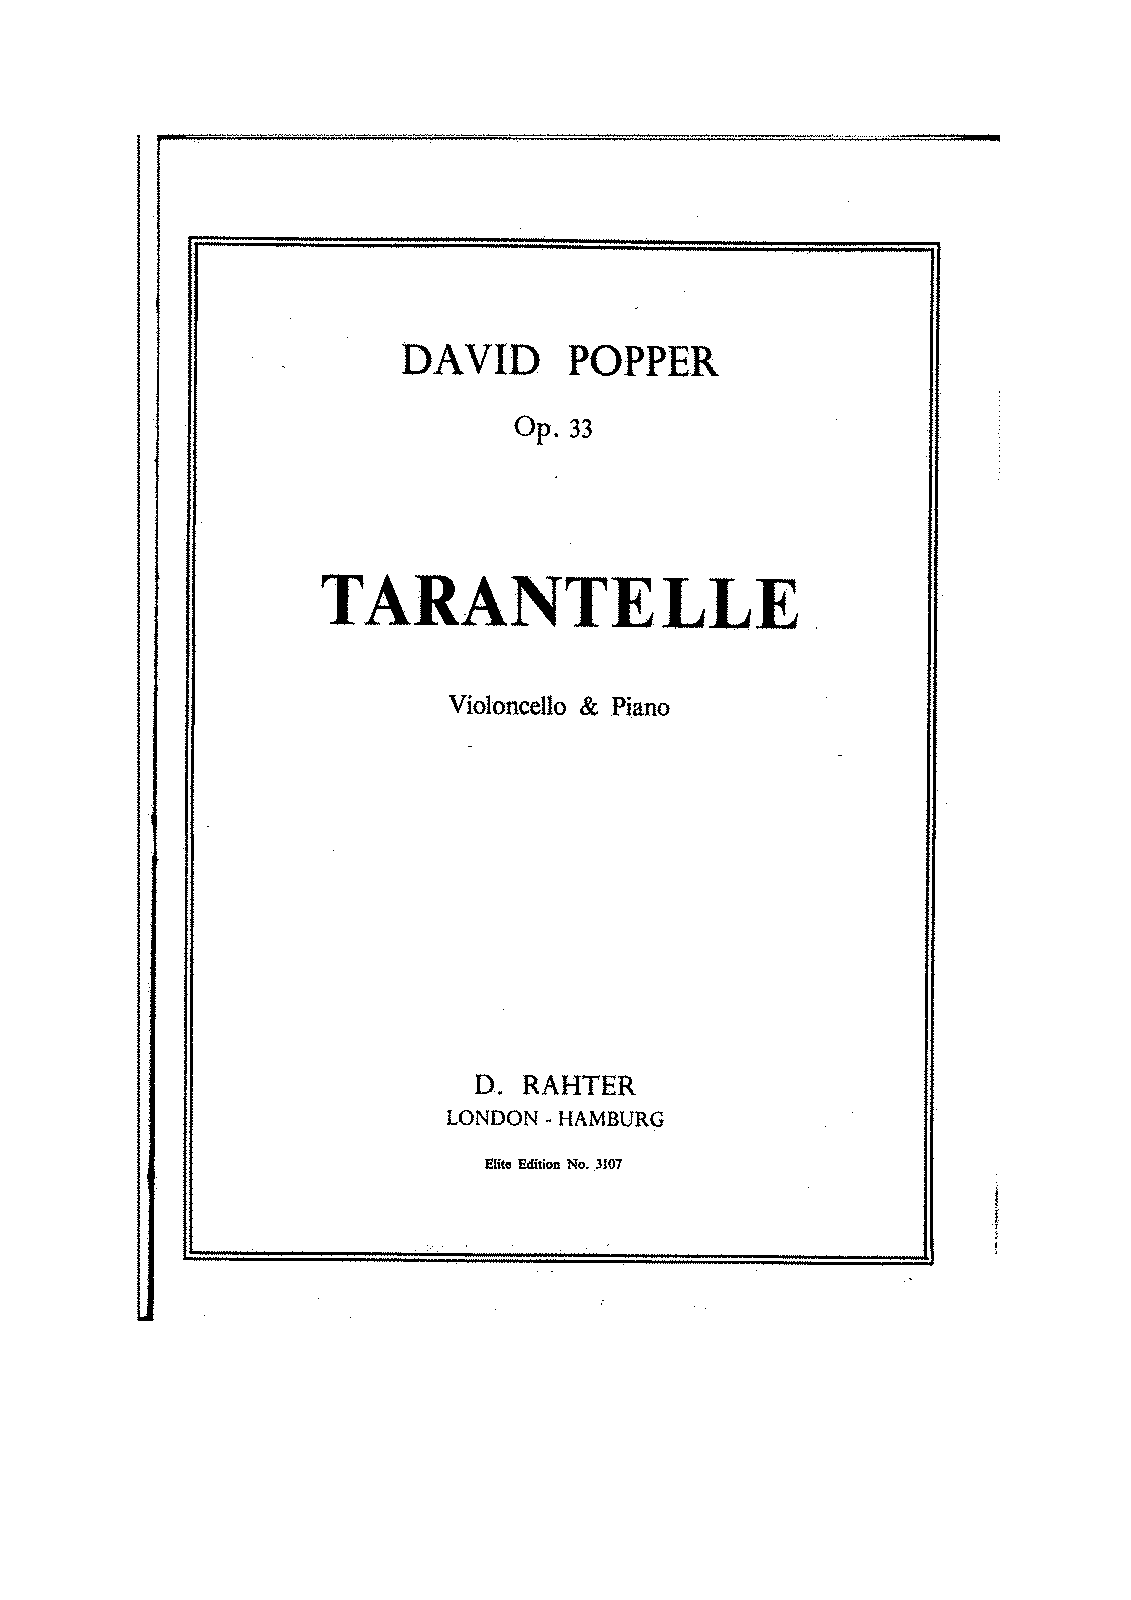 David Popper - Tarantella,Op.33,for cello and piano.pdf